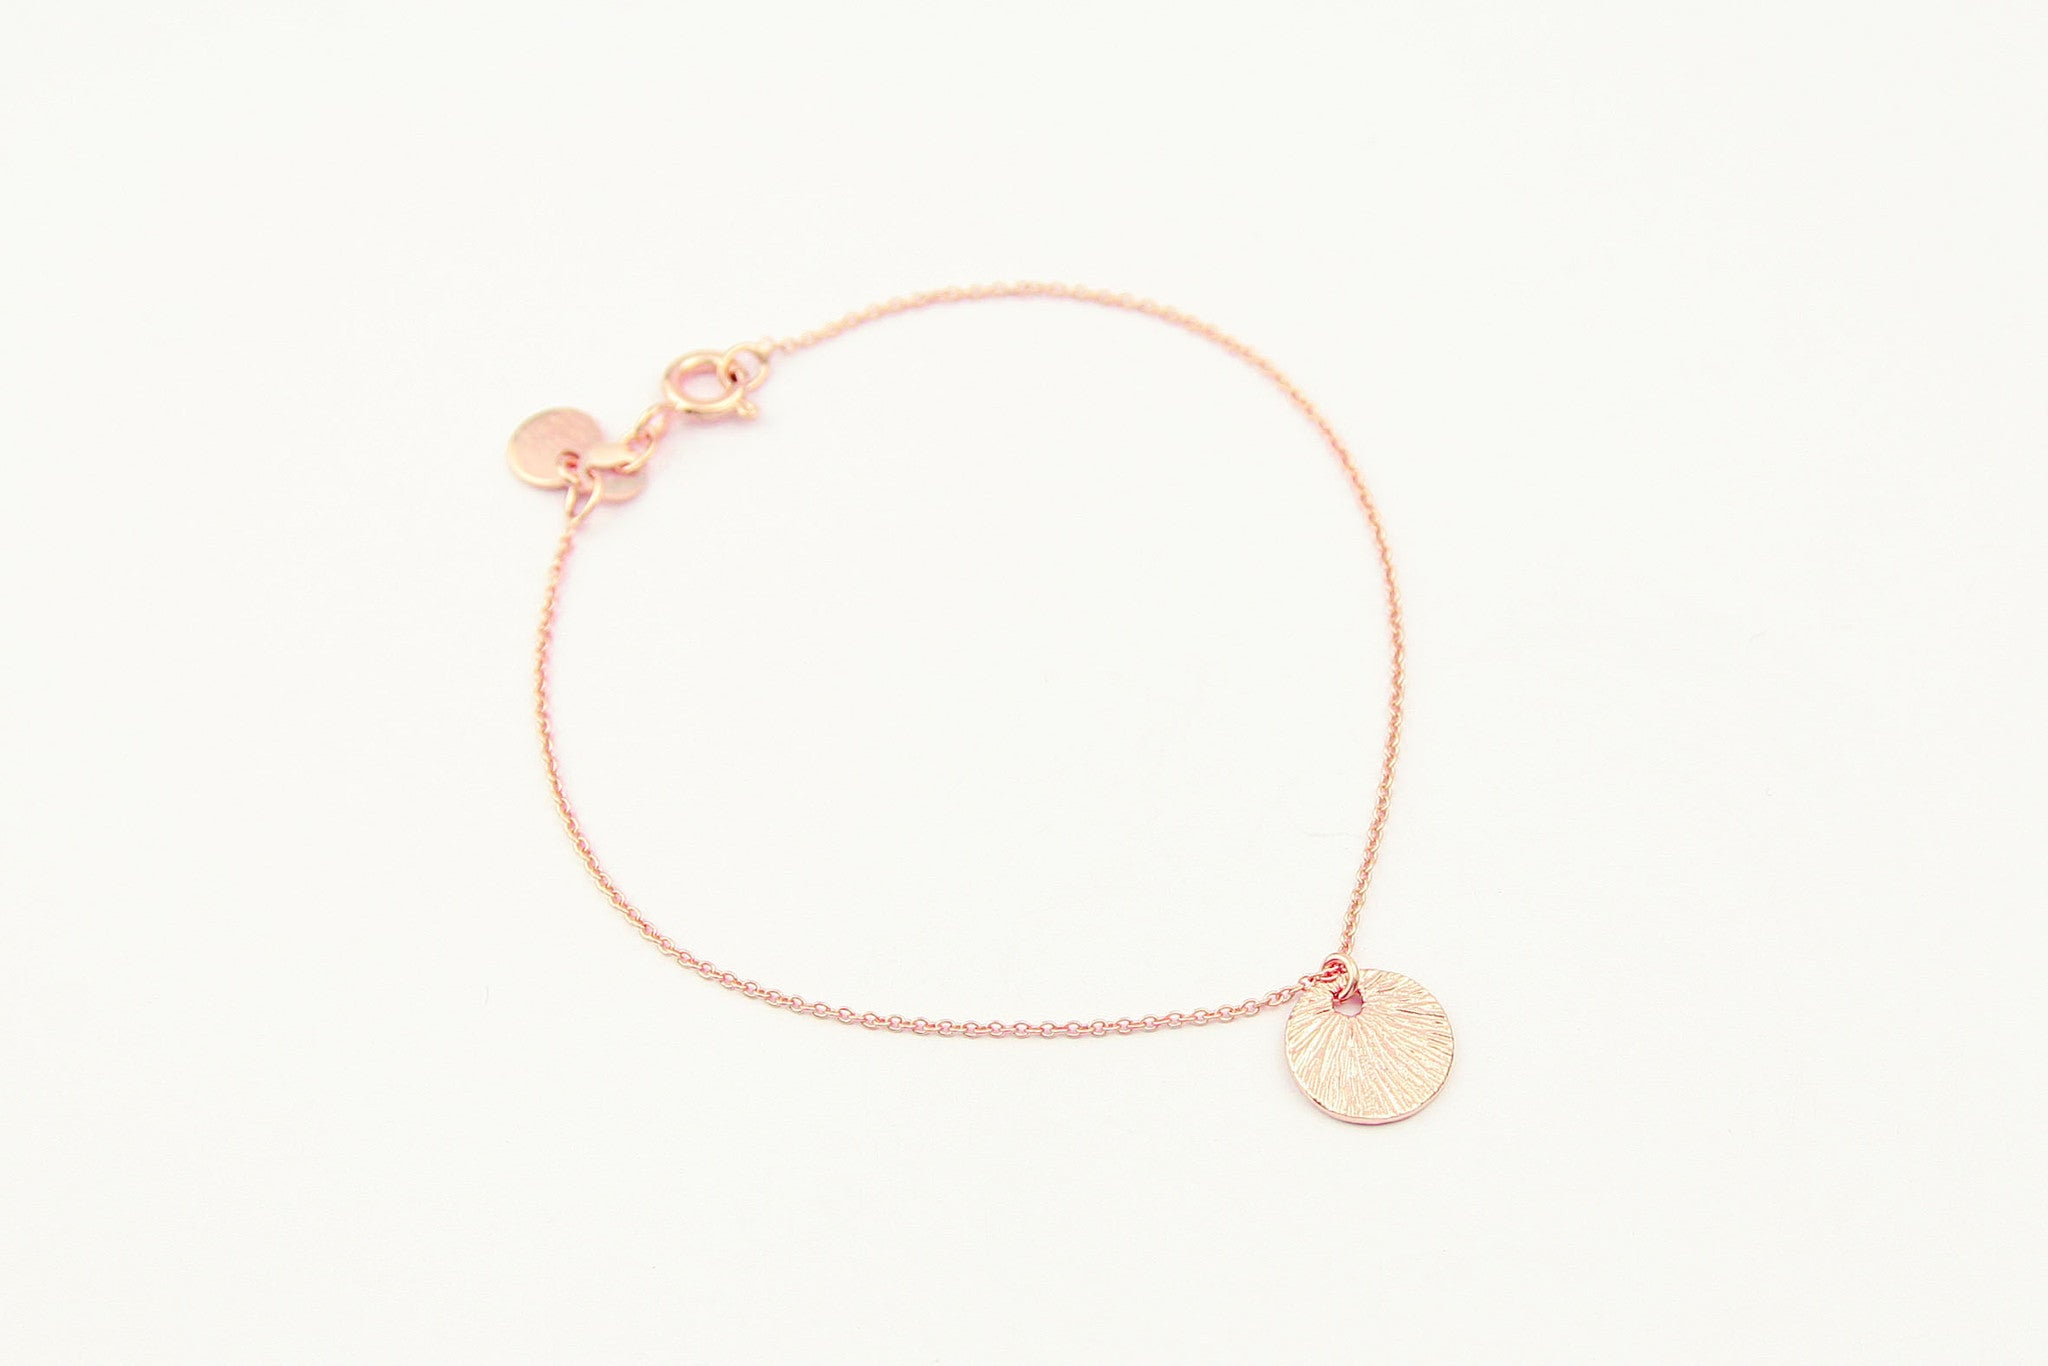 jewelberry armband bracelet small shell rose gold plated sterling silver fine jewelry handmade with love fairtrade curb chain